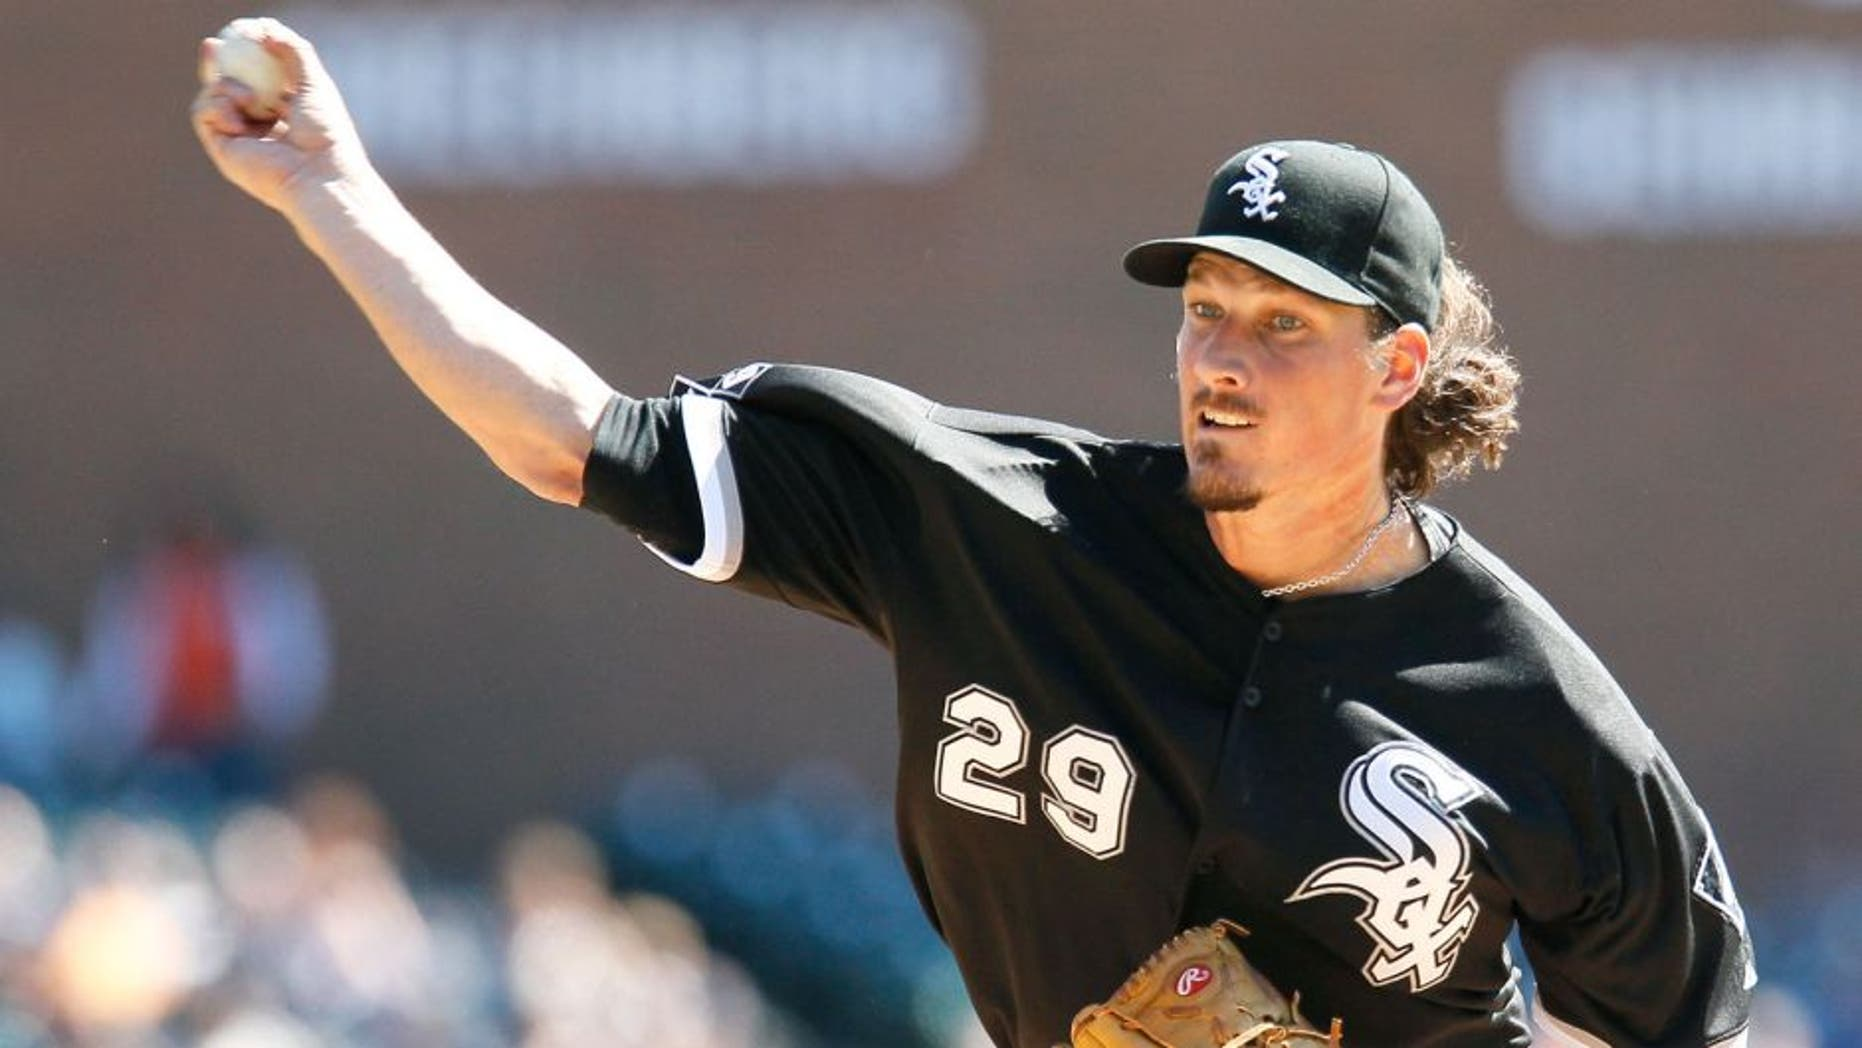 DETROIT, MI - SEPTEMBER 21: Jeff Samardzija #29 of the Chicago White Sox pitches against the Detroit Tigers during the first inning at Comerica Park on September 21, 2015 in Detroit, Michigan. Samardzija pitches his sixth career complete game, giving up one hit, no walks and six strikeouts, in a 2-0 win. (Photo by Duane Burleson/Getty Images)